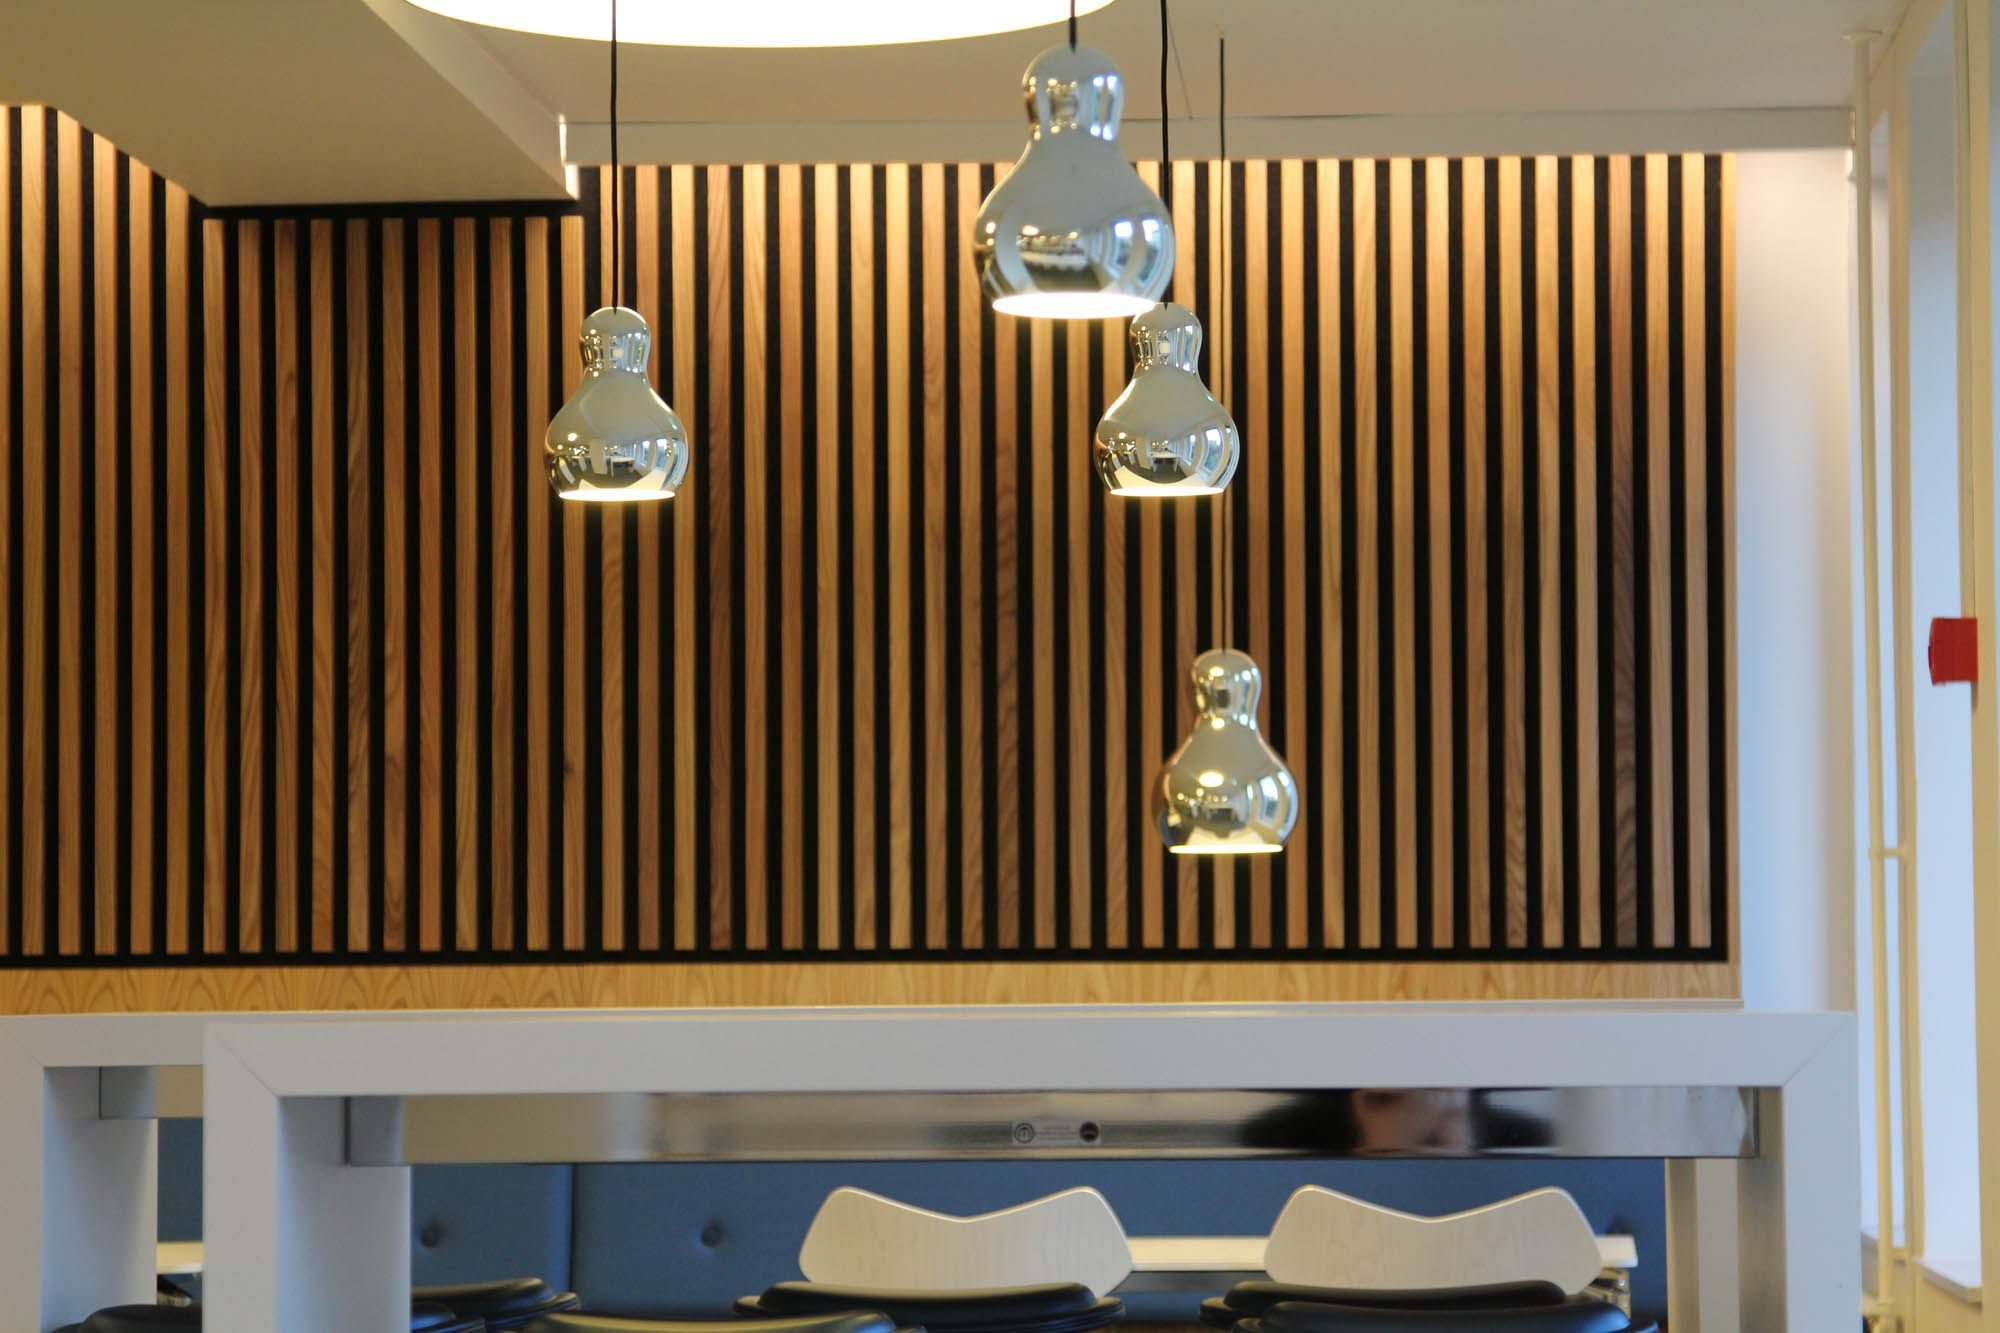 beautiful interior design in a danica pension canteen - by ole, Innenarchitektur ideen